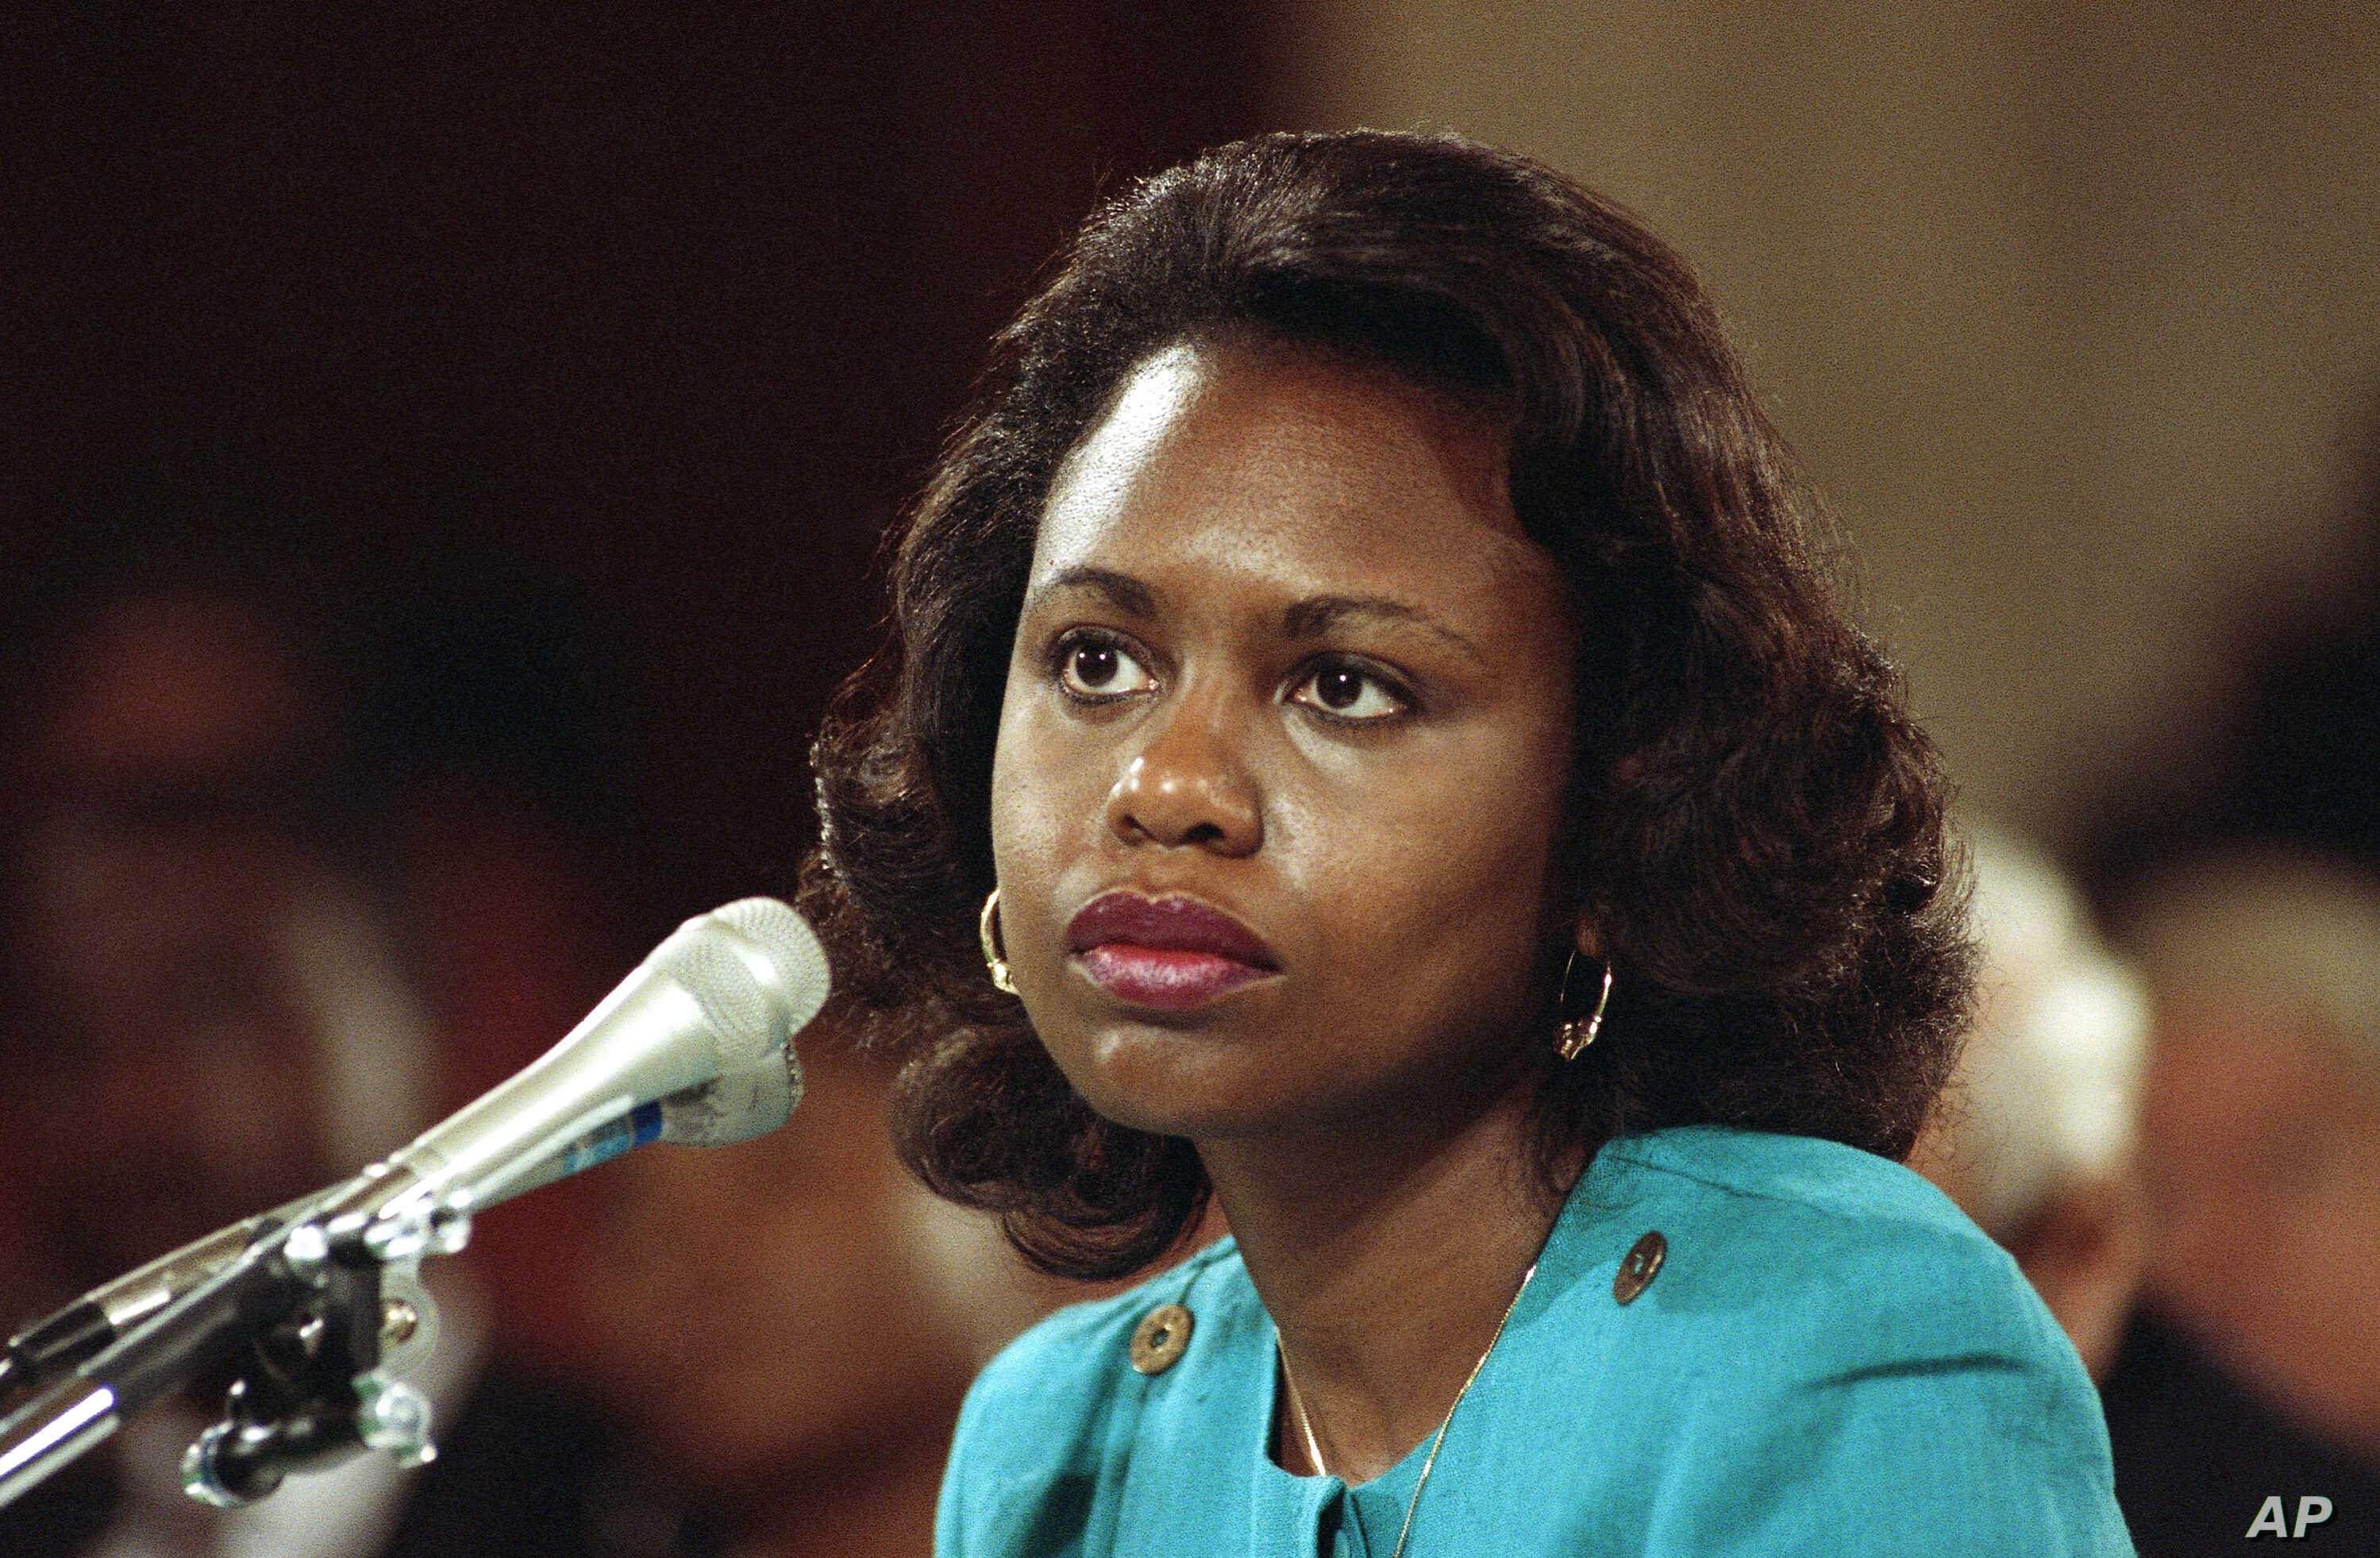 FILE - Anita Hill, a University of Oklahoma law professor, testified during confirmation hearings before the Senate Judiciary Committee in 1991 that Clarence Thomas, a Supreme Court nominee, had sexually harassed her when they worked together in prev...